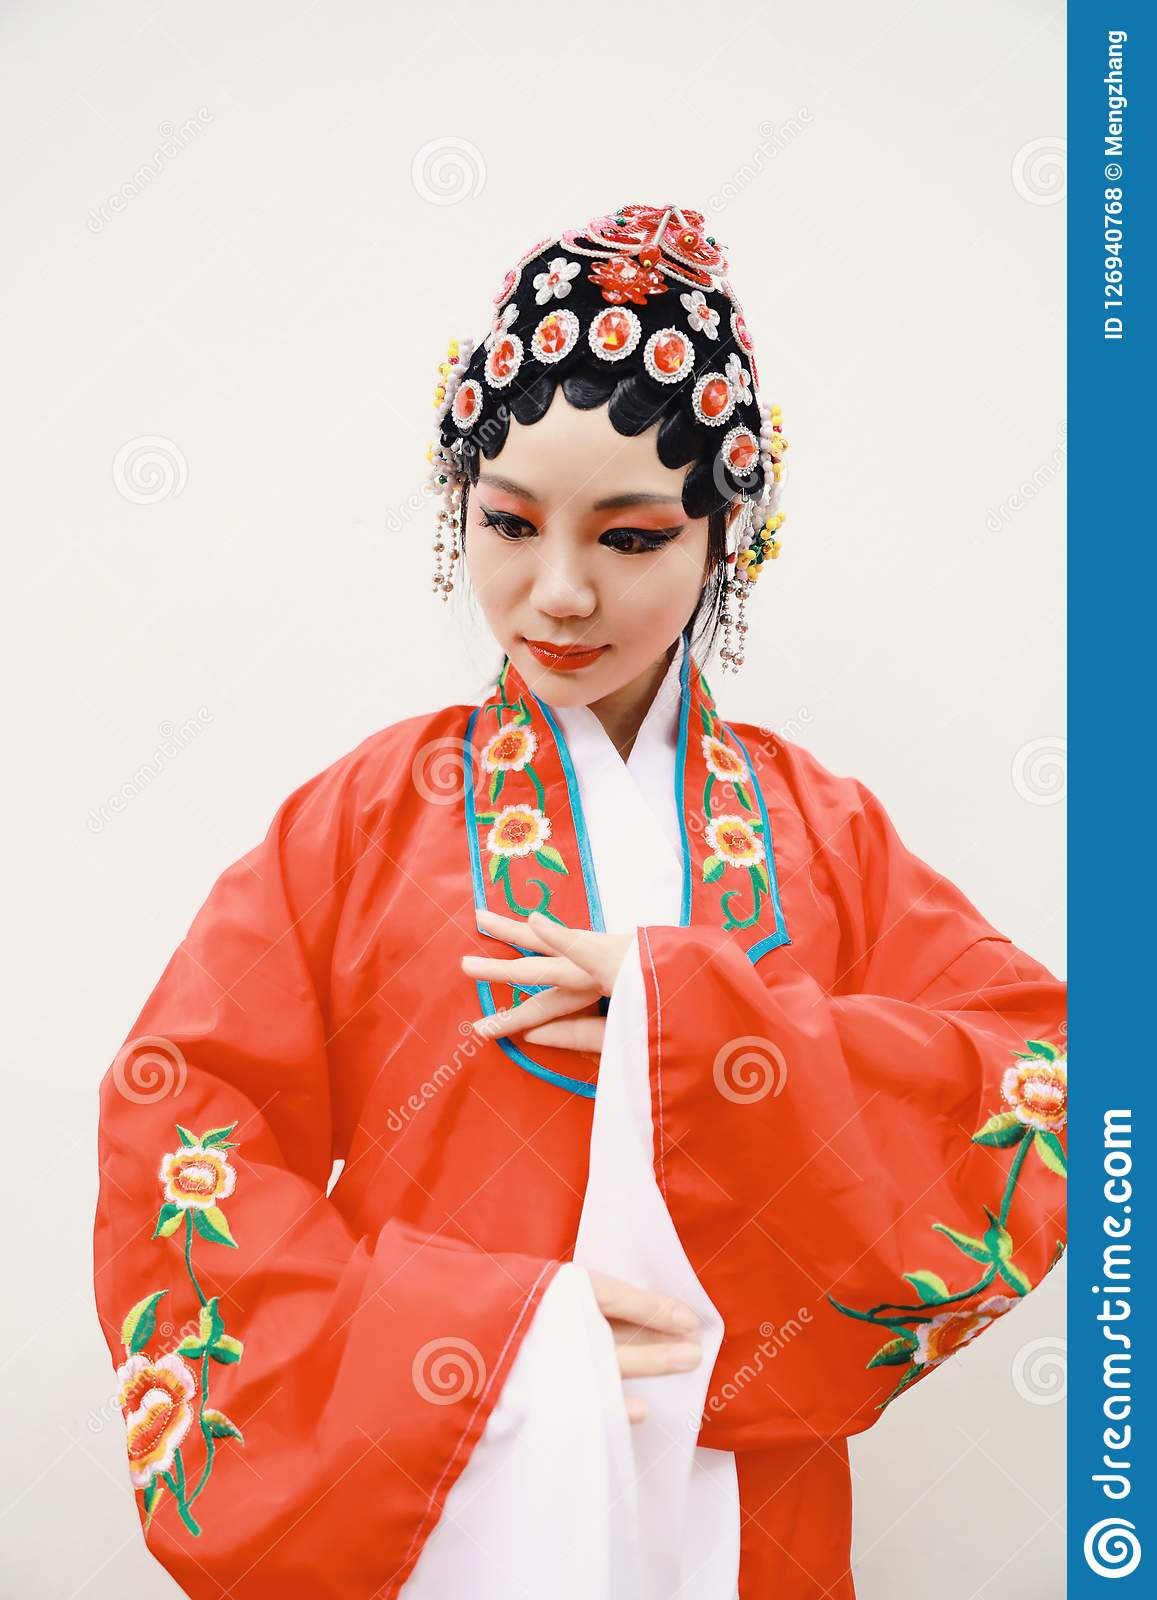 13feccd92 Aisa Chinese woman Peking Beijing Opera Costumes China traditional role  drama play bride White isolated background